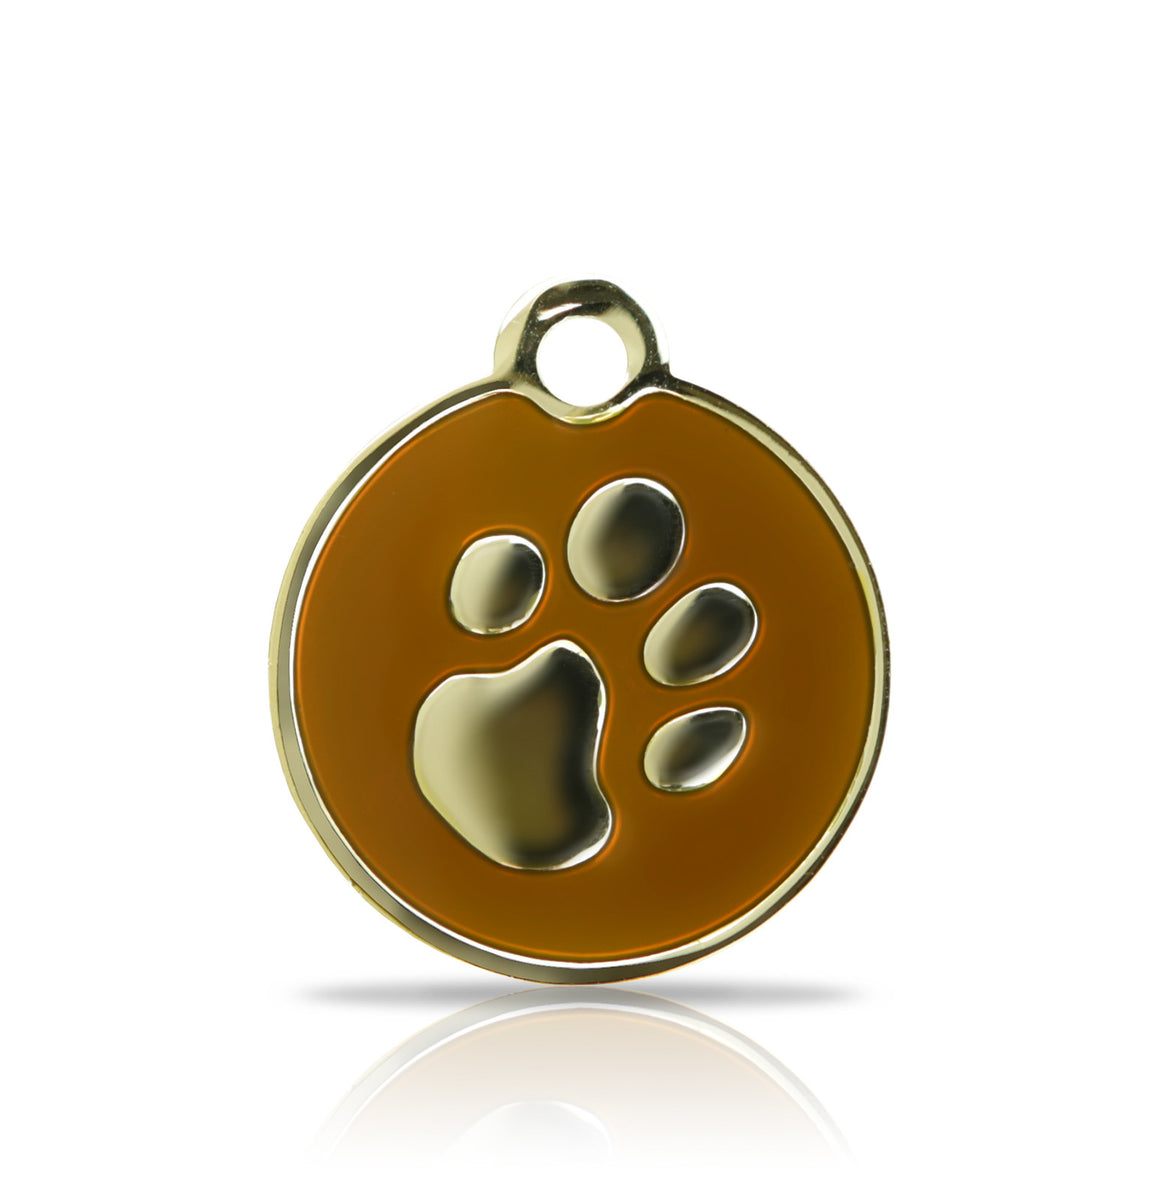 TaggIT Elegance Small Disc Brown & Gold Dog Tag iMarc Tag